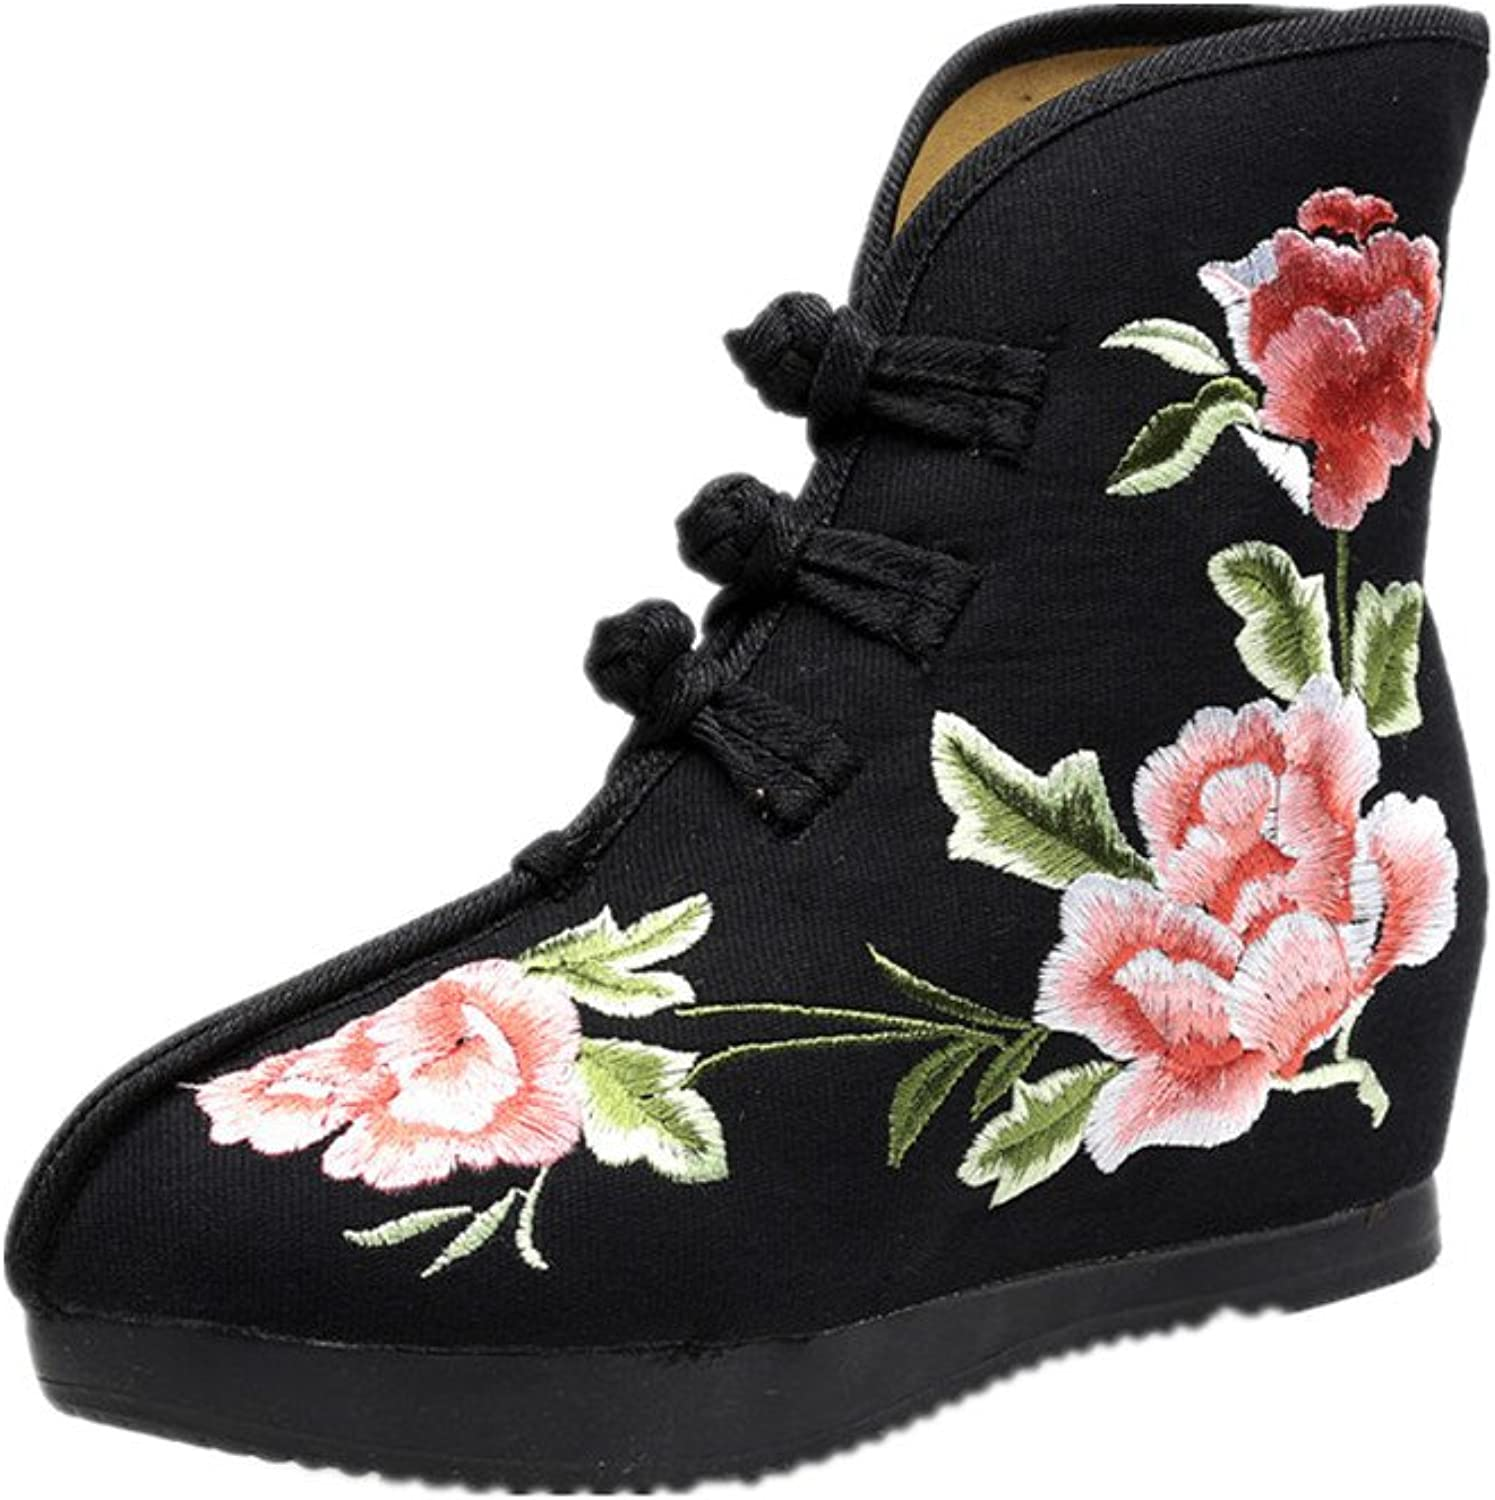 Tianrui Crown Women and Ladies The Hibiscus Embroidery Short Ankle Boots shoes